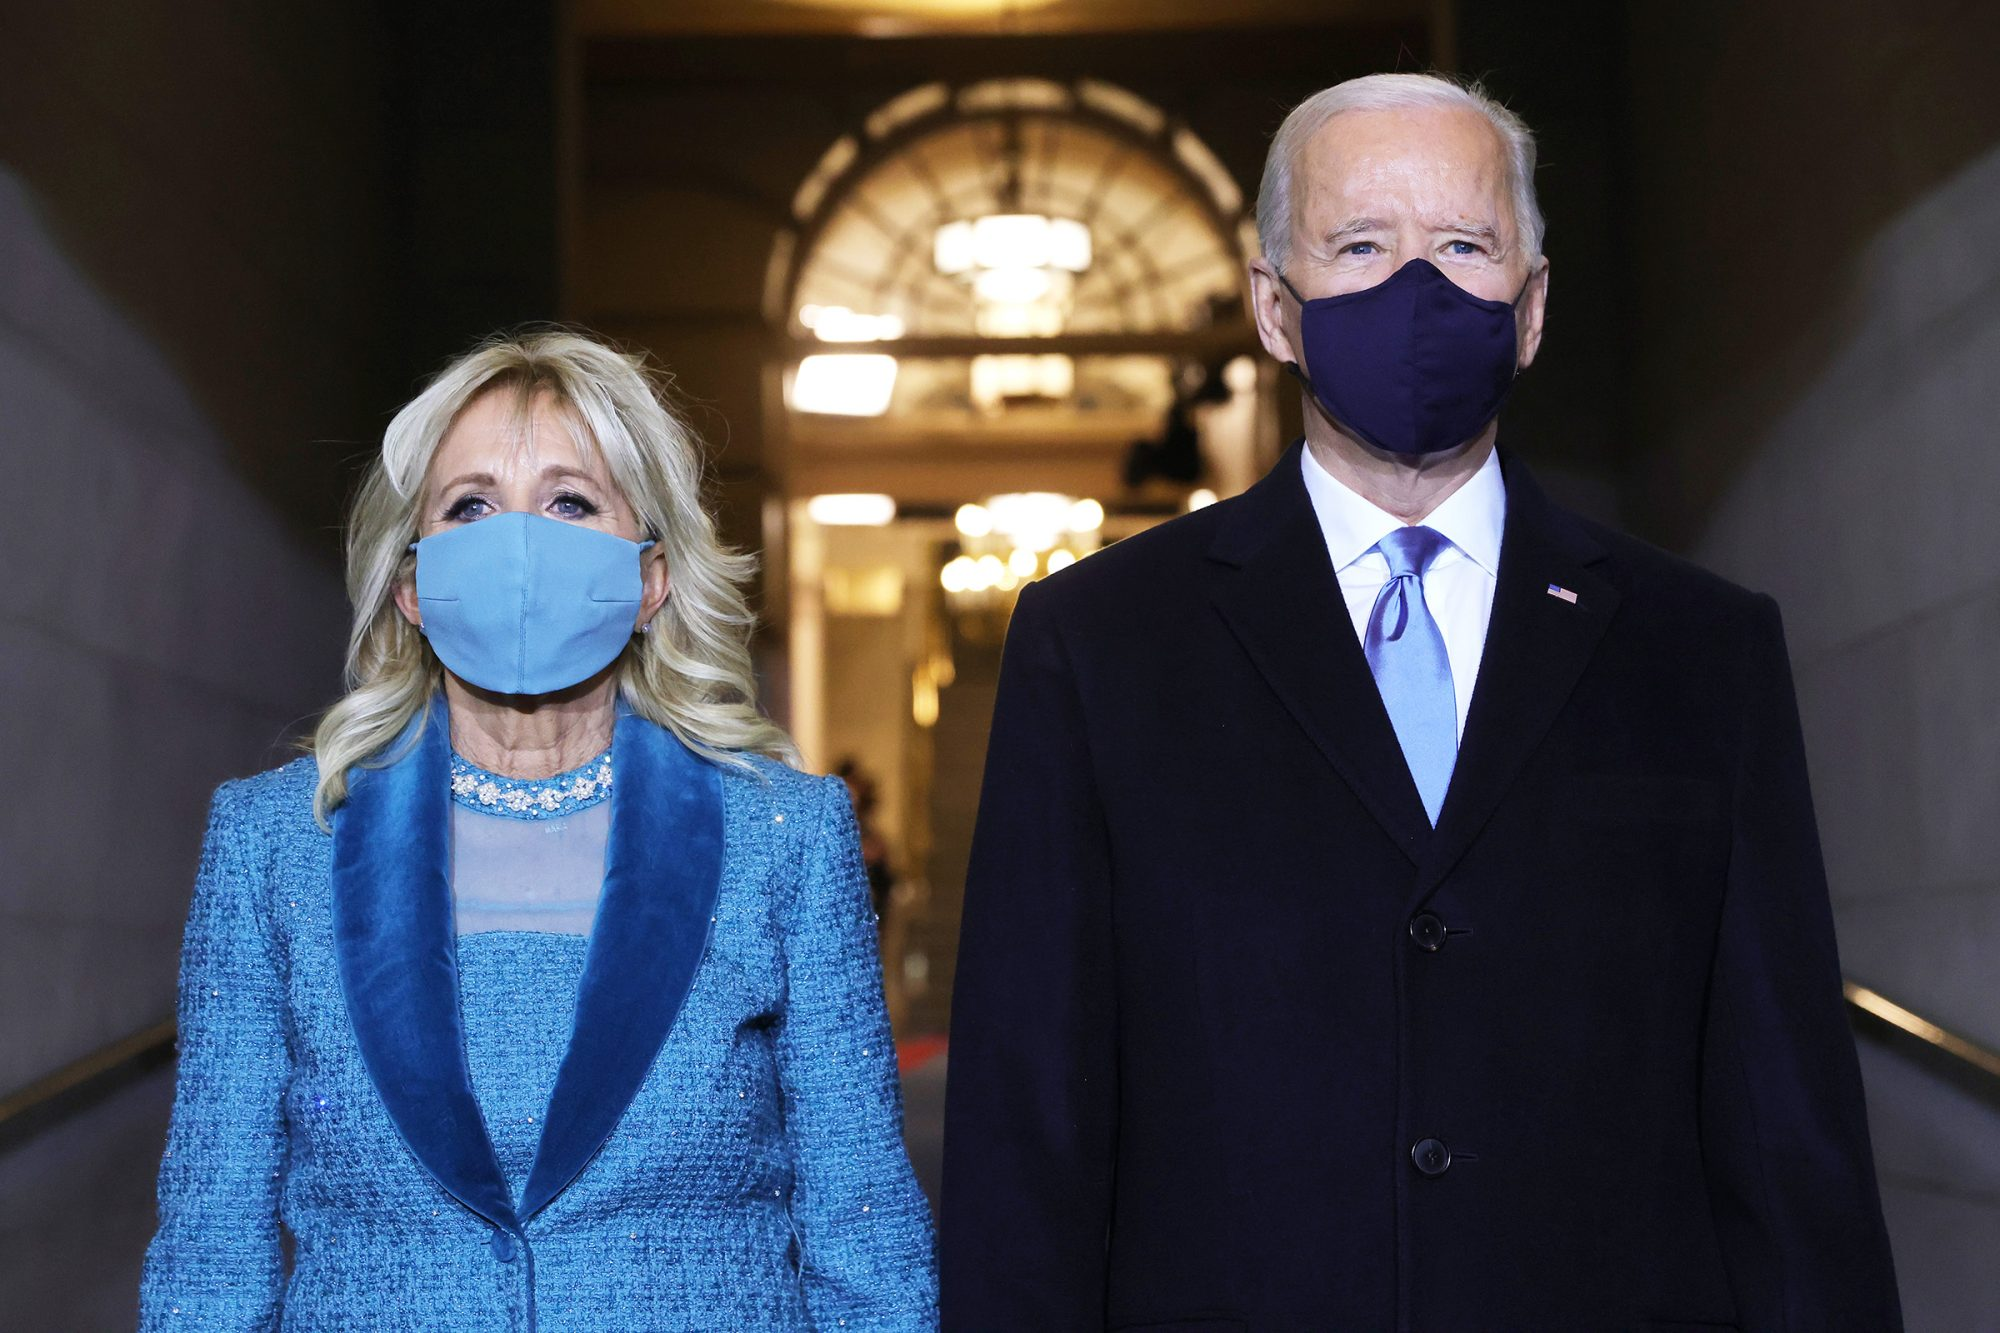 U.S. President-elect Joe Biden and Dr. Jill Biden arrive to Biden's inauguration on the West Front of the U.S. Capitol on January 20, 2021 in Washington, DC